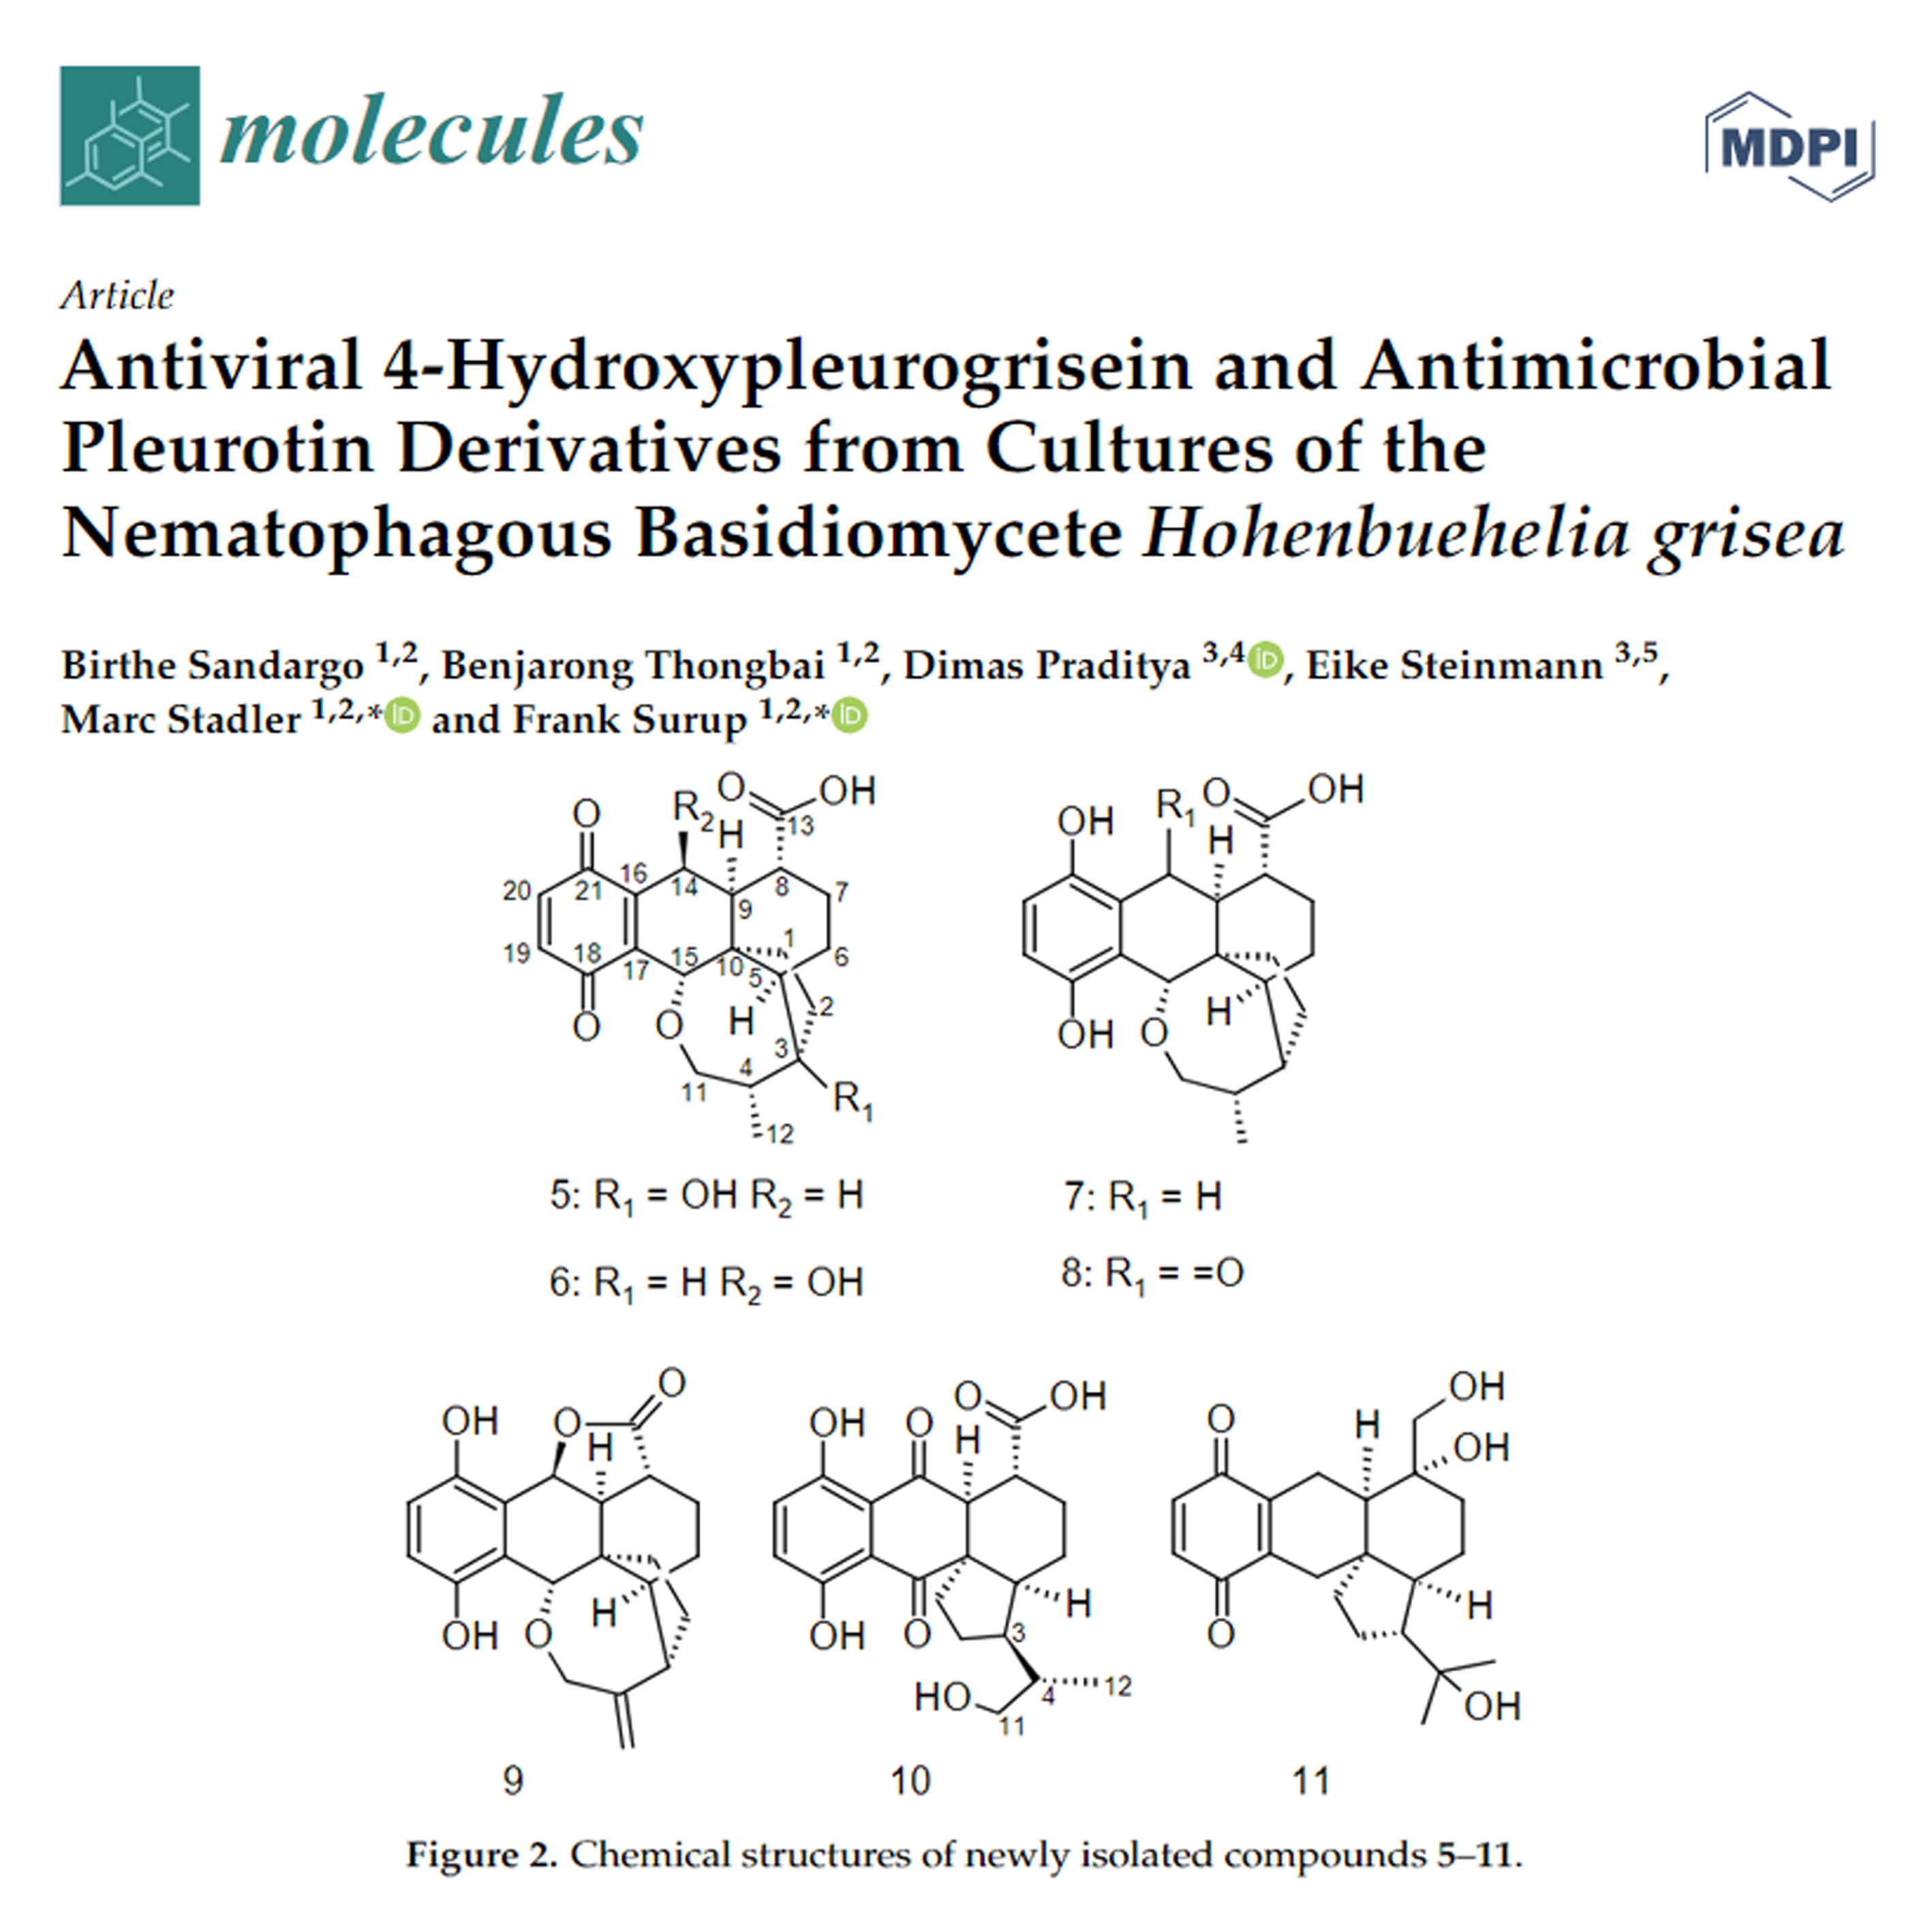 Antiviral 4-Hydroxypleurogrisein and Antimicrobial Pleurotin Derivatives from Cultures of the Nematophagous Basidiomycete Hohenbuehelia grisea